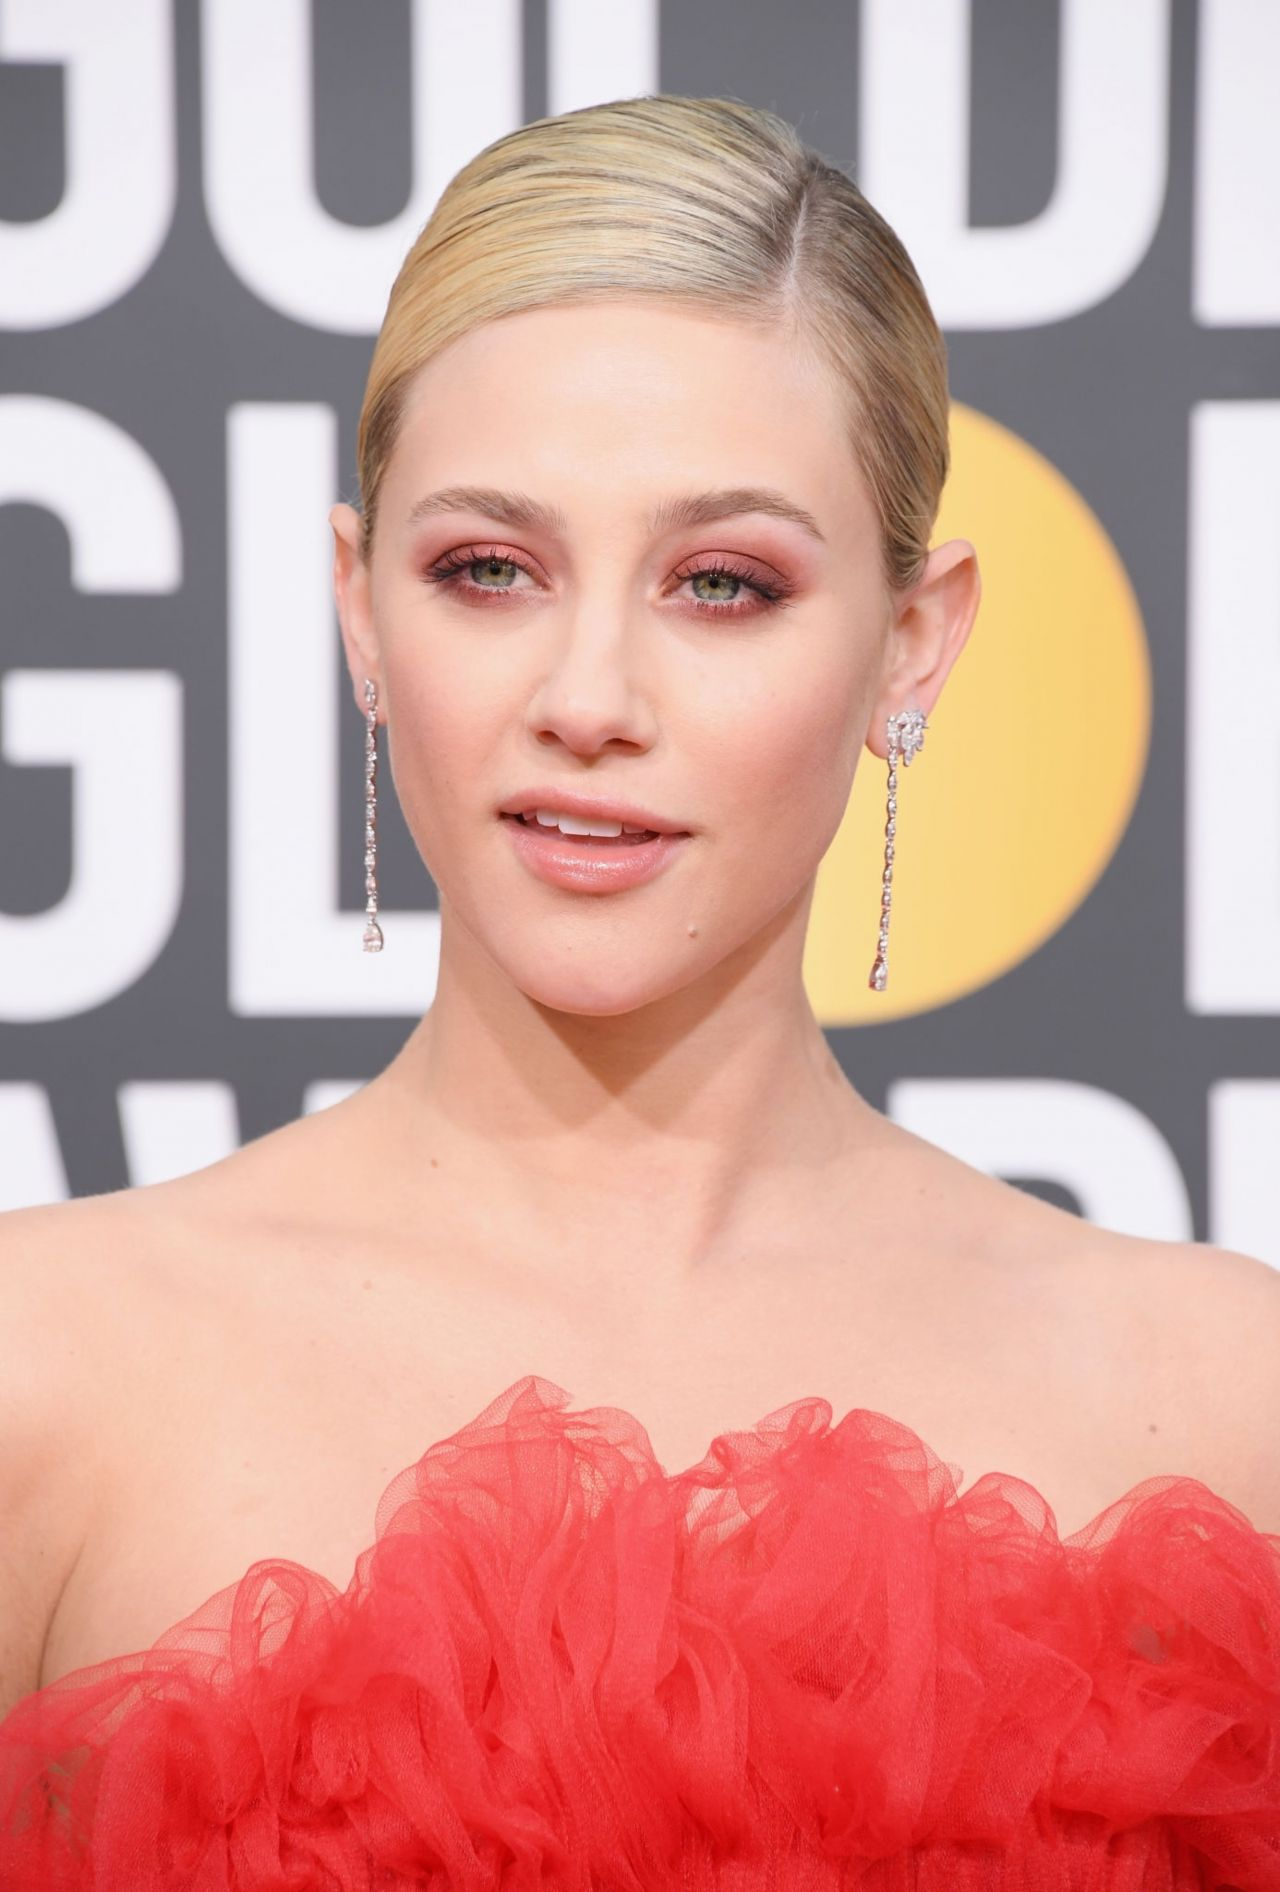 Lili-Reinhart-2019-golden-globe-premi-red-carpet-1